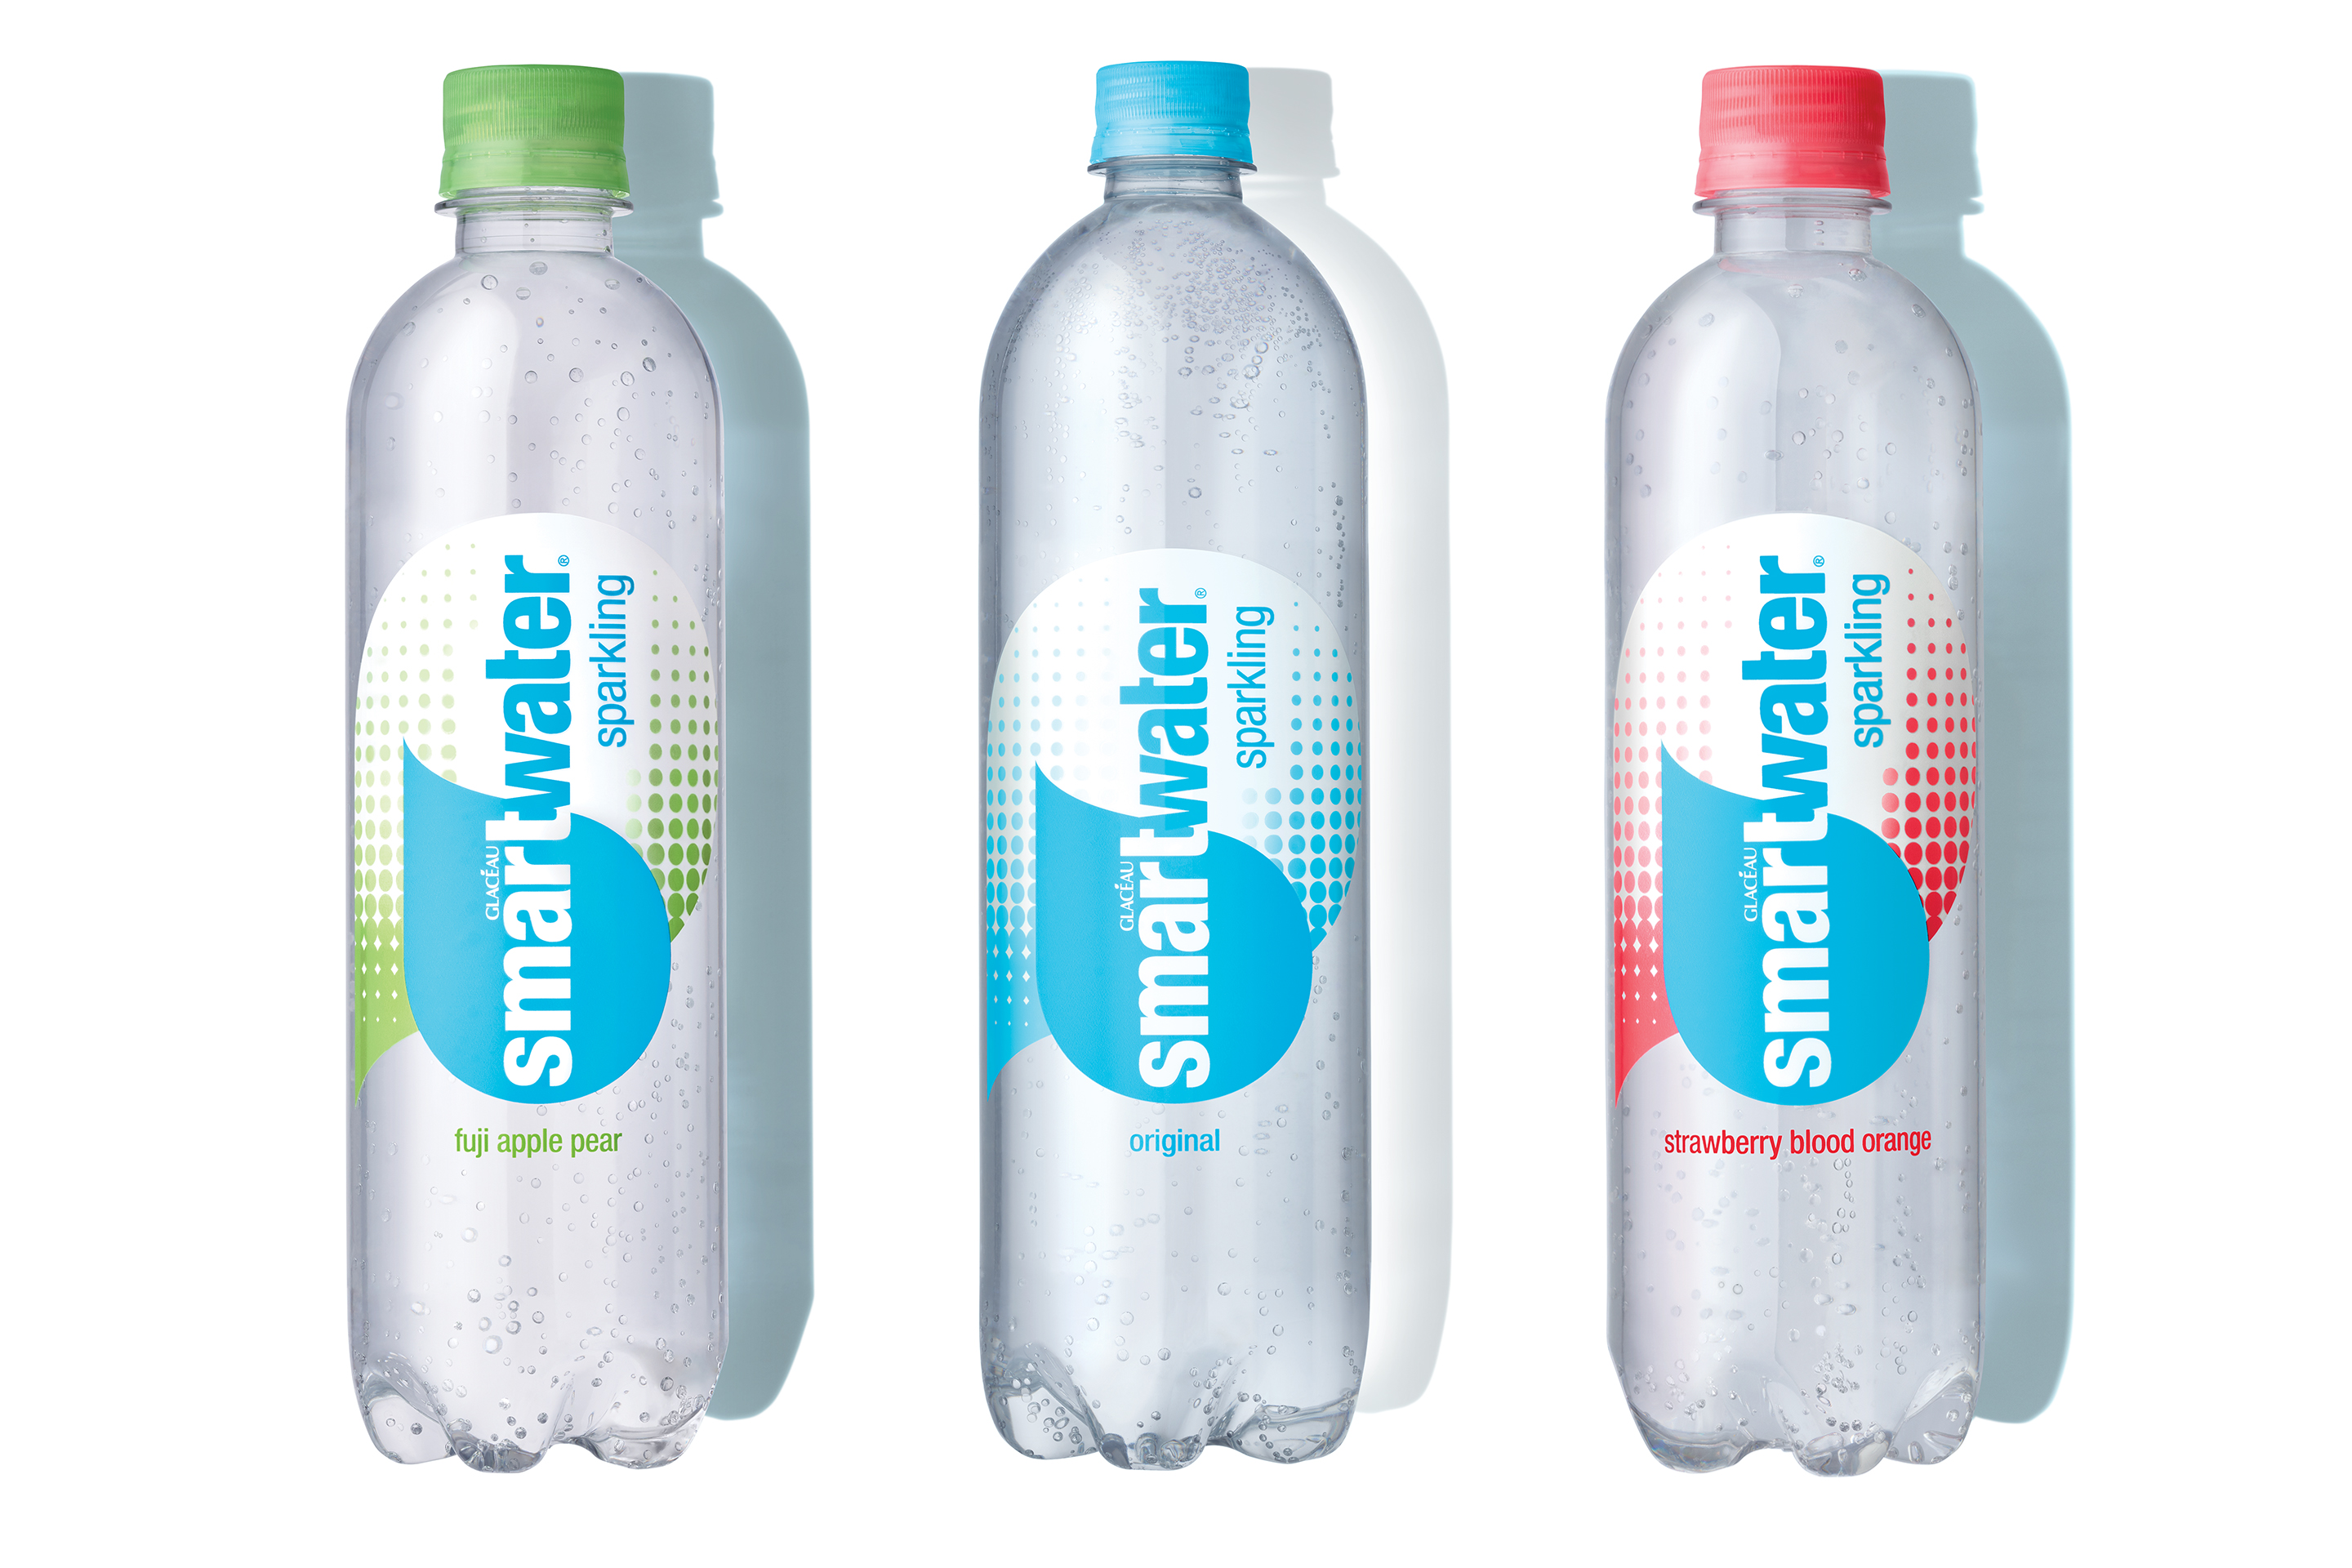 Coca-cola Drops Three Sparkling Smartwater Flavors To Compete With La Croix, Pepsi photo